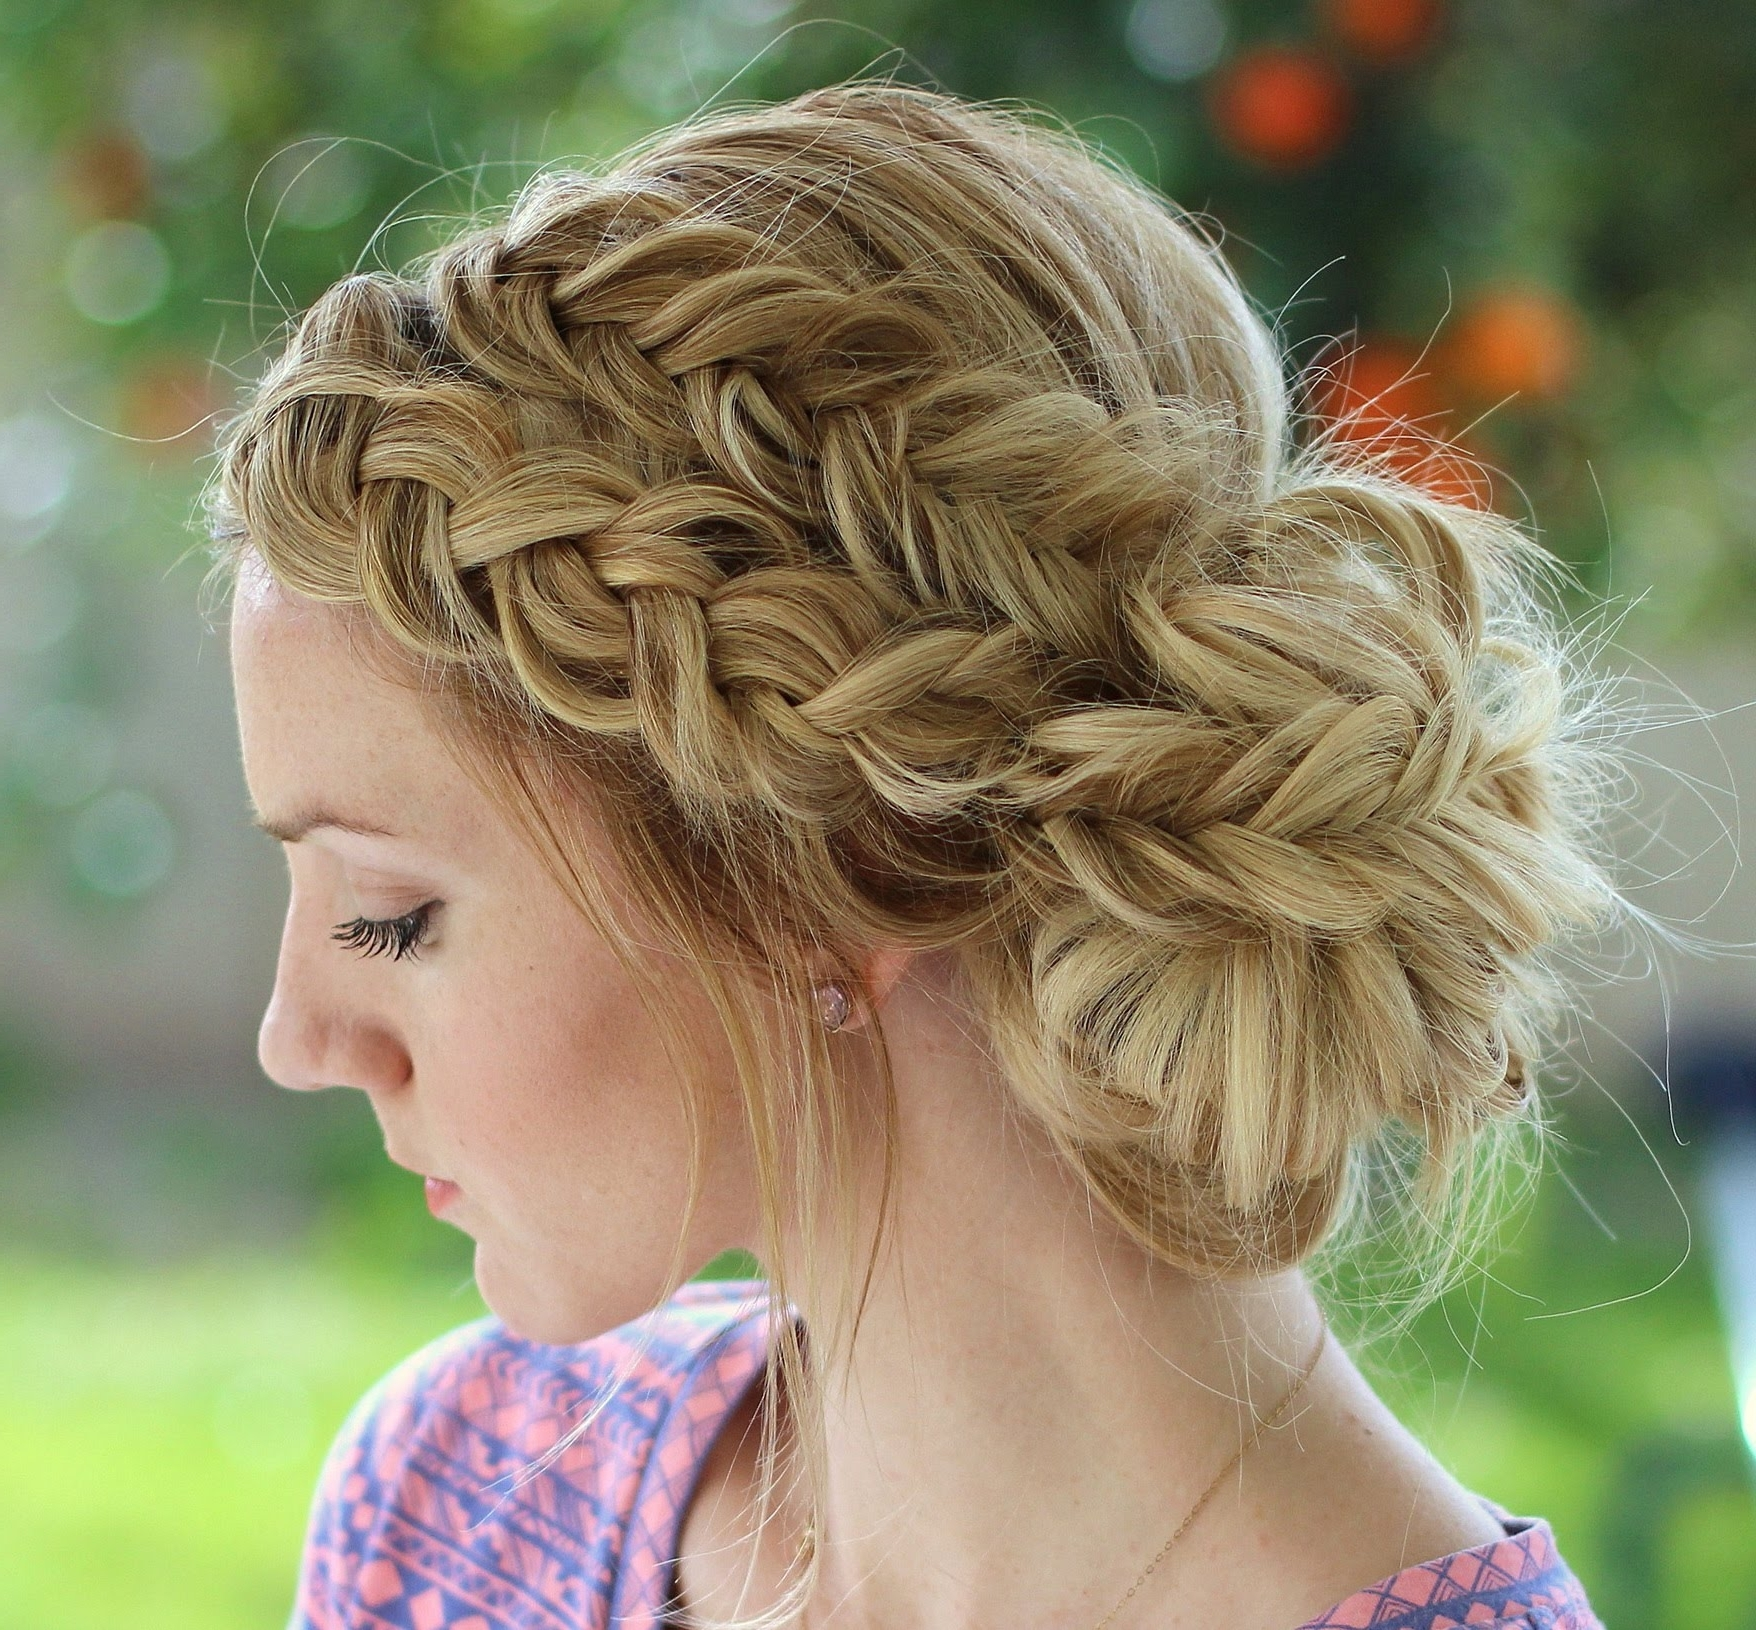 Preferred Messy Ponytail Hairstyles With Side Dutch Braid Throughout How To: Dutch Braid And Dutch Fishtail Braid Messy Bun – Youtube (View 4 of 20)